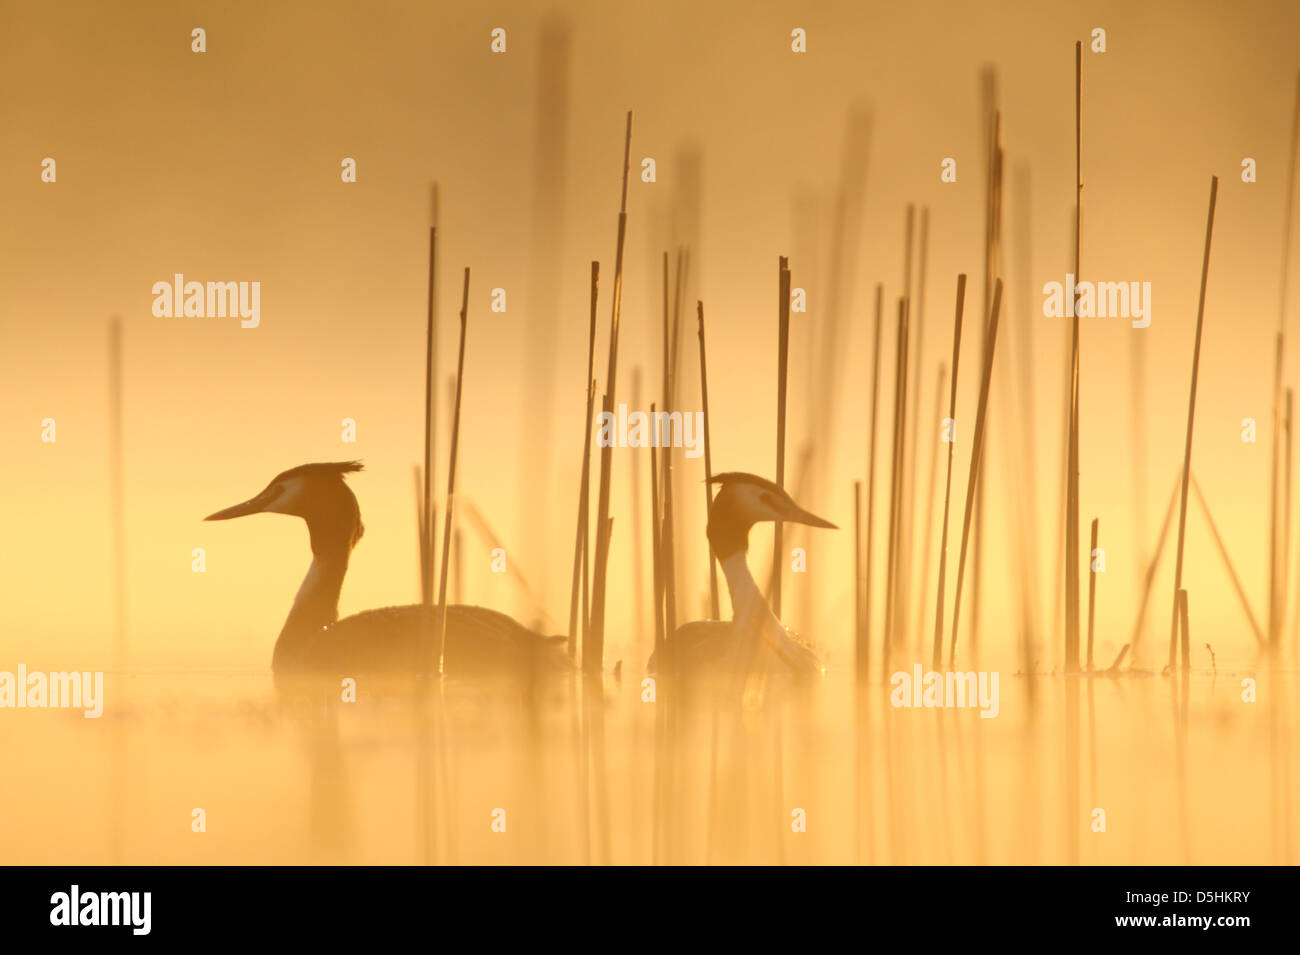 Pair of Great Crested Grebes (Podiceps cristatus), Europe - Stock Image